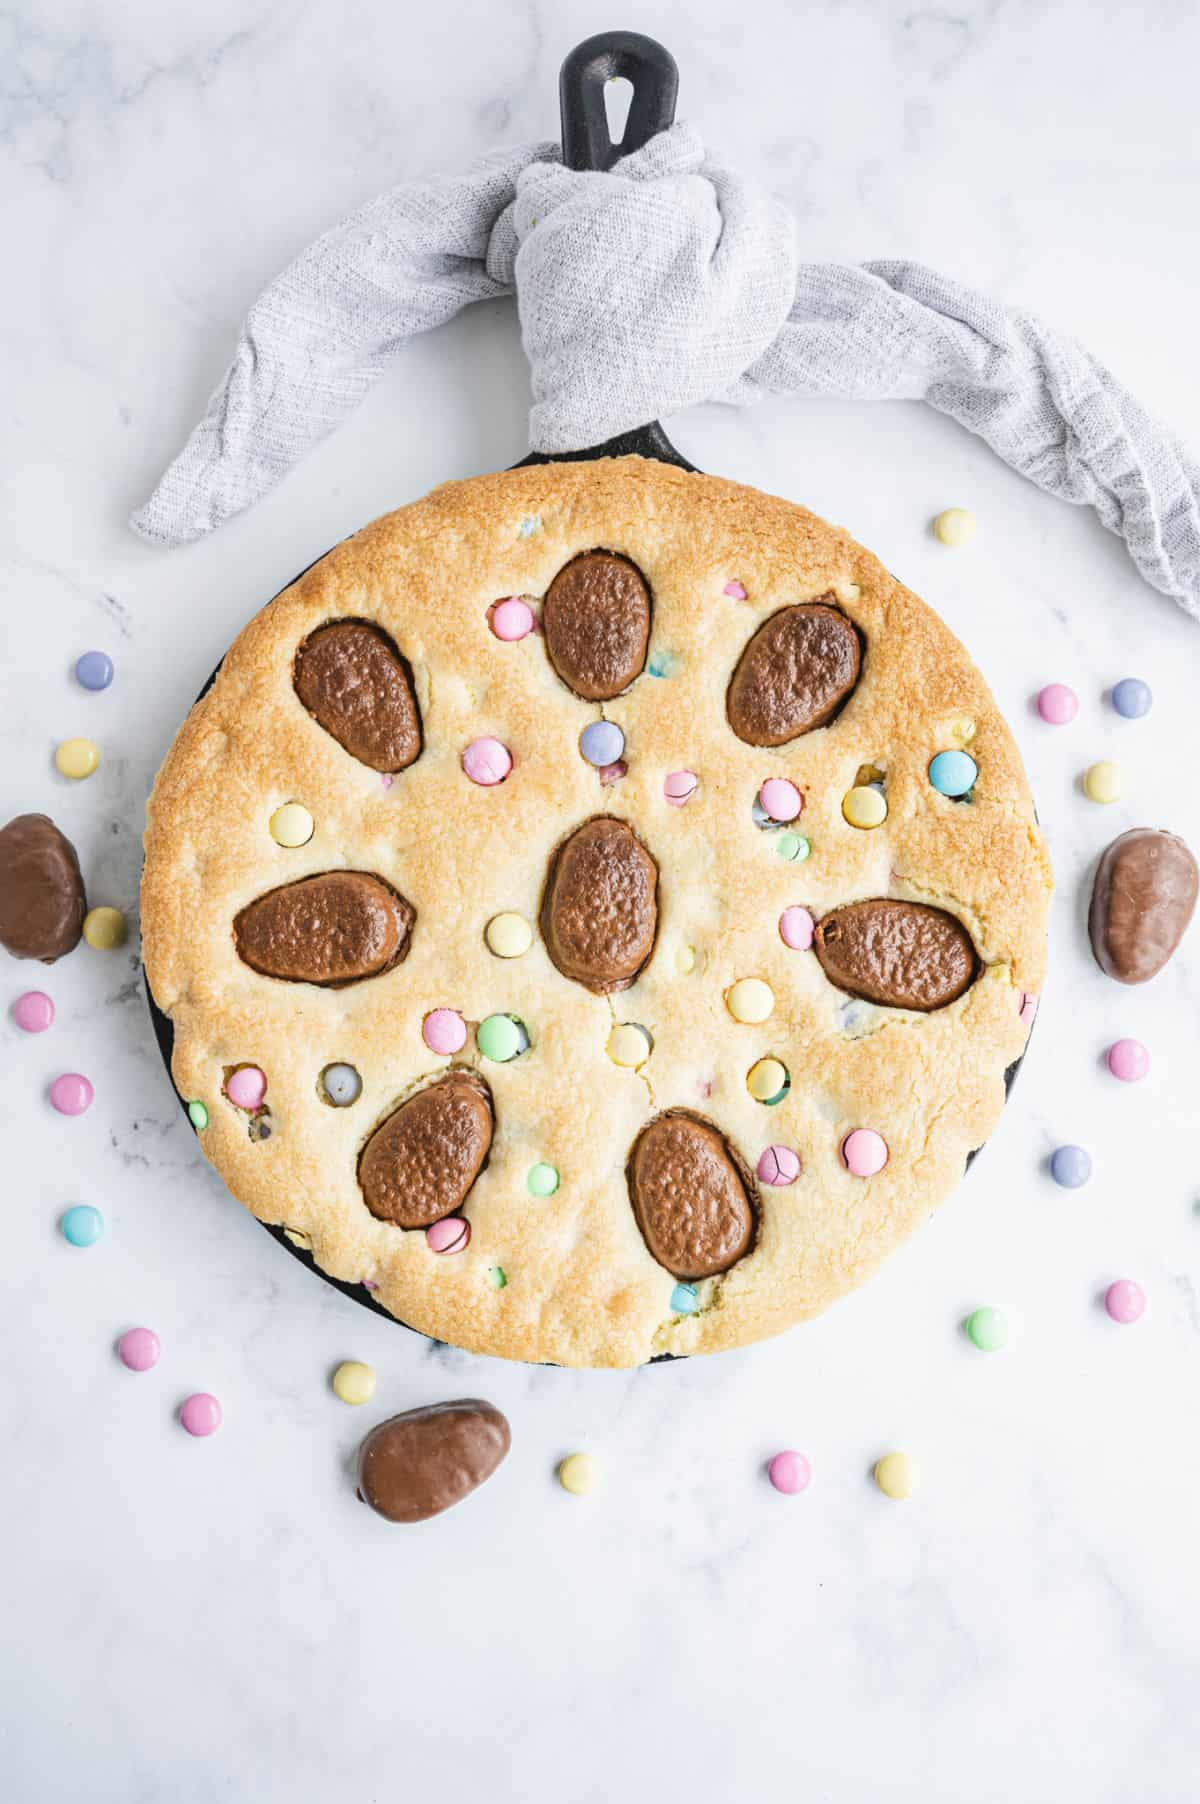 Sugar cookie cake baked in a skillet for Easter.